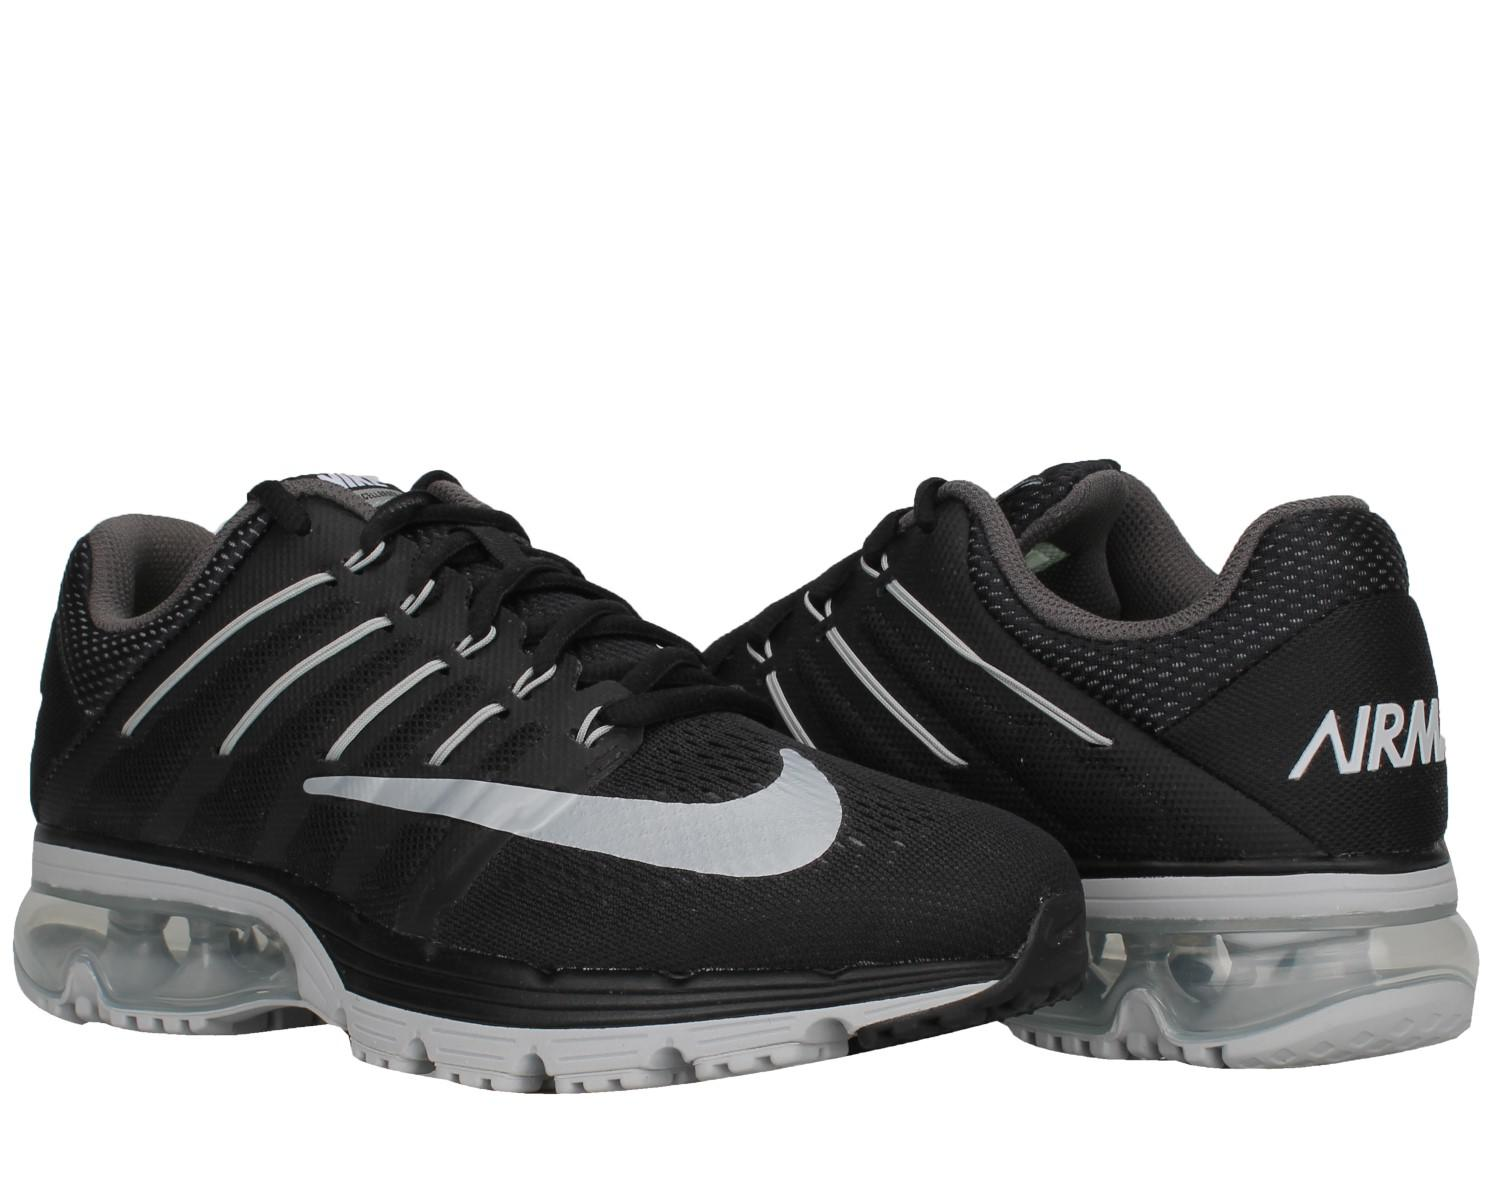 19b8c73bd5 ... low cost lyst nike womens air max excellerate 4 black white dark grey  4173b e6474